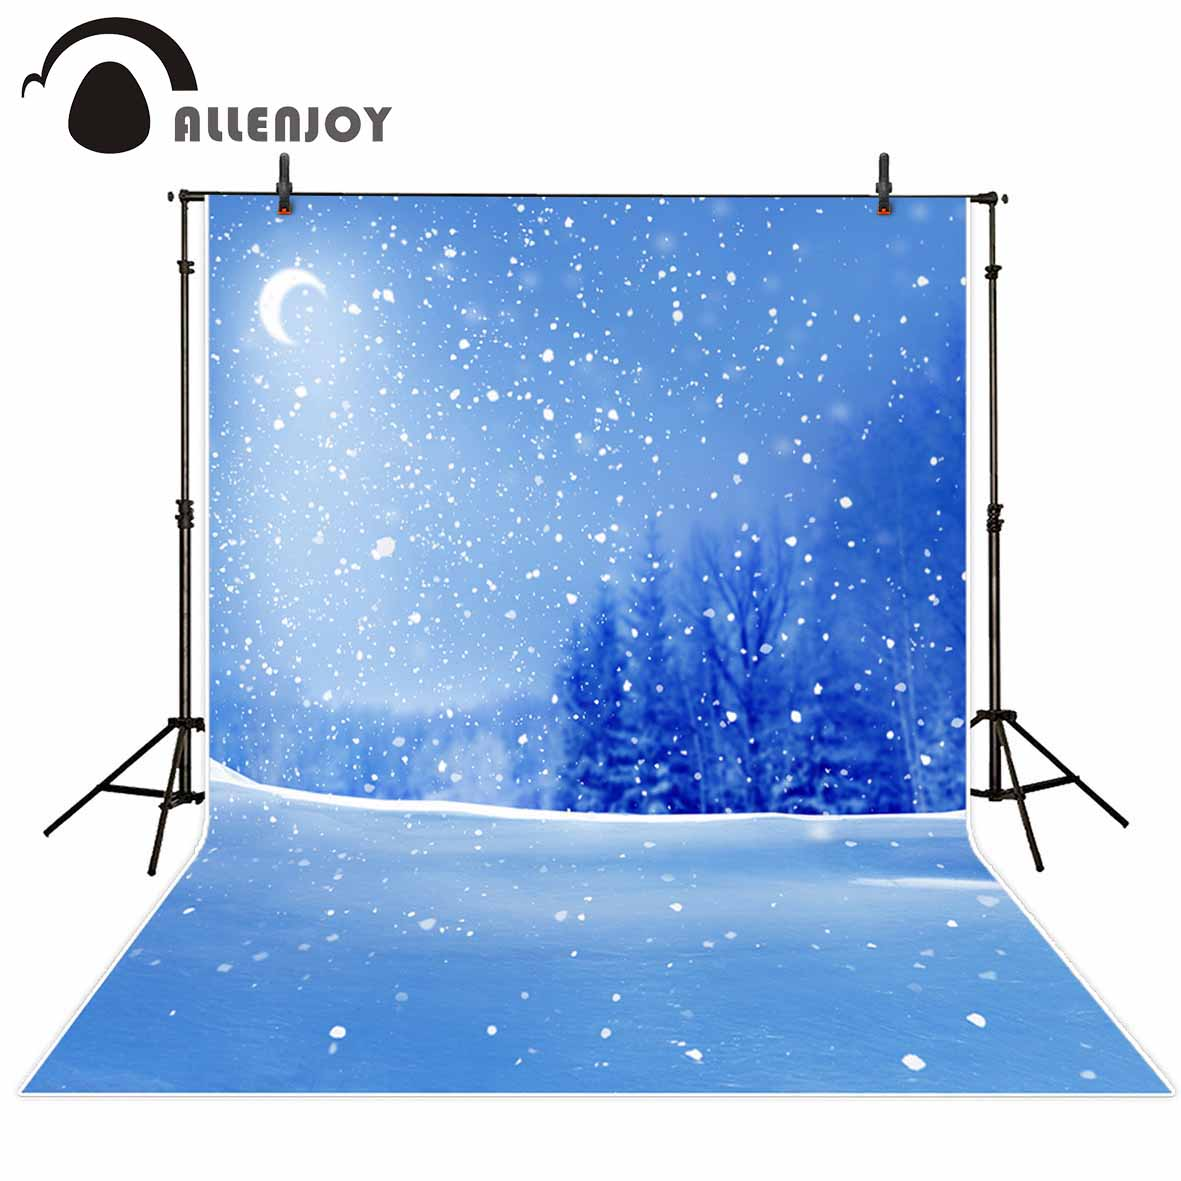 Allenjoy polyester photography backdrop Night snowflakes blurry natural scenery new background photocall customize photo printed kate background natural scenery